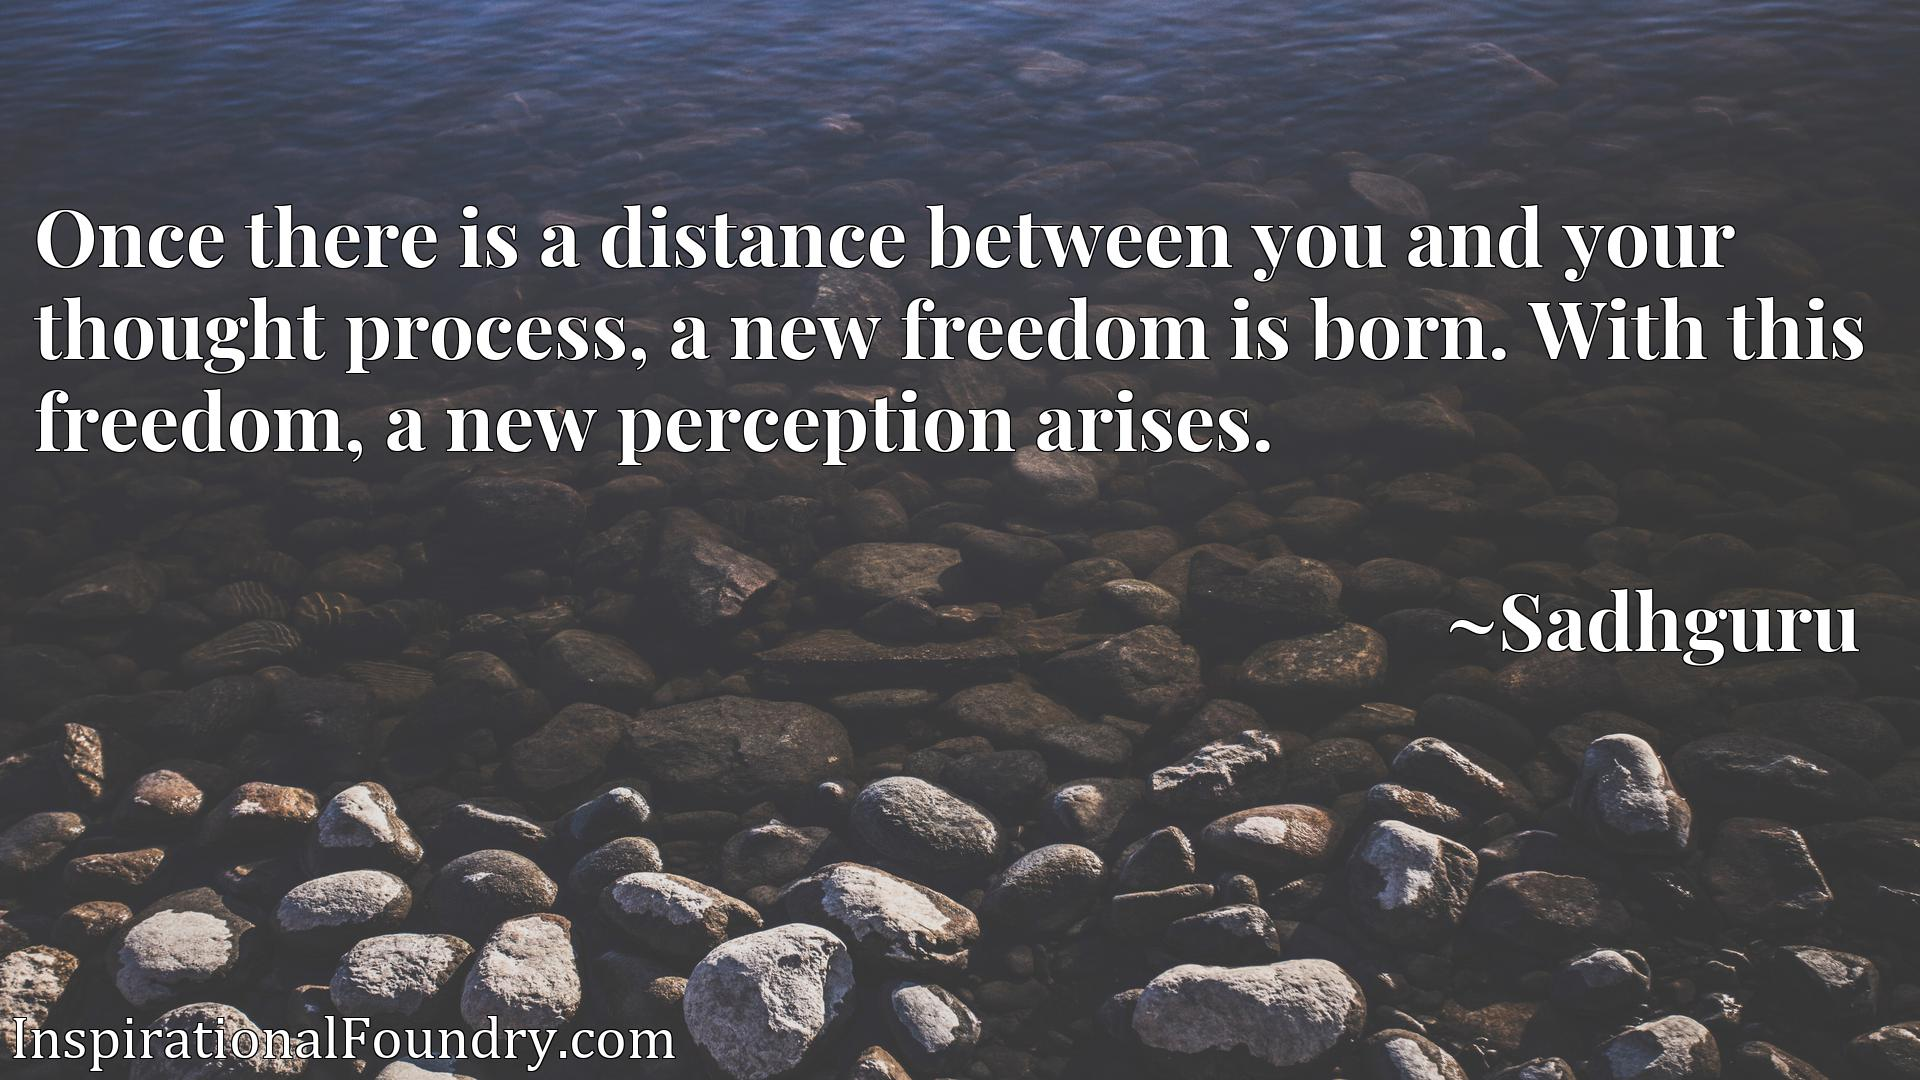 Quote Picture :Once there is a distance between you and your thought process, a new freedom is born. With this freedom, a new perception arises.